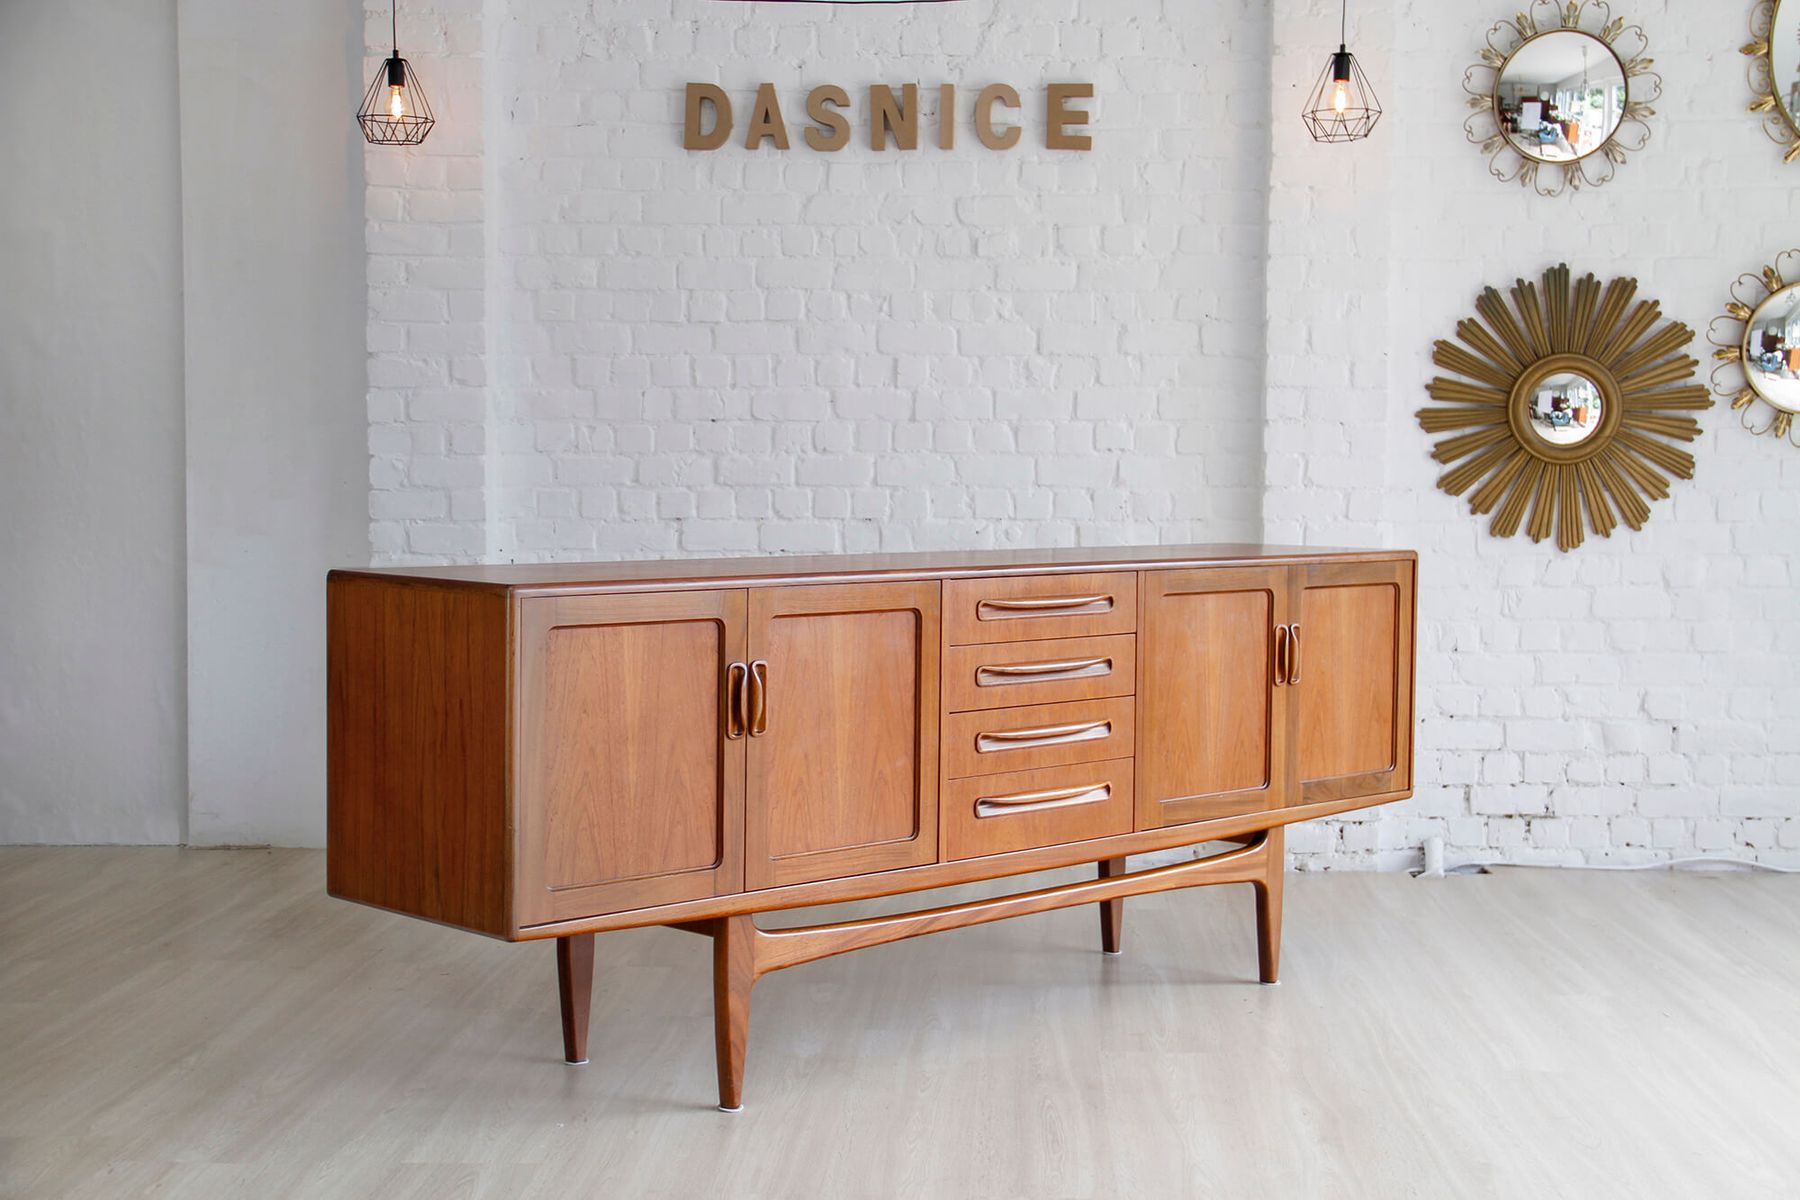 vintage sideboard in teak by ib kofod larsen for g plan for sale at pamono. Black Bedroom Furniture Sets. Home Design Ideas